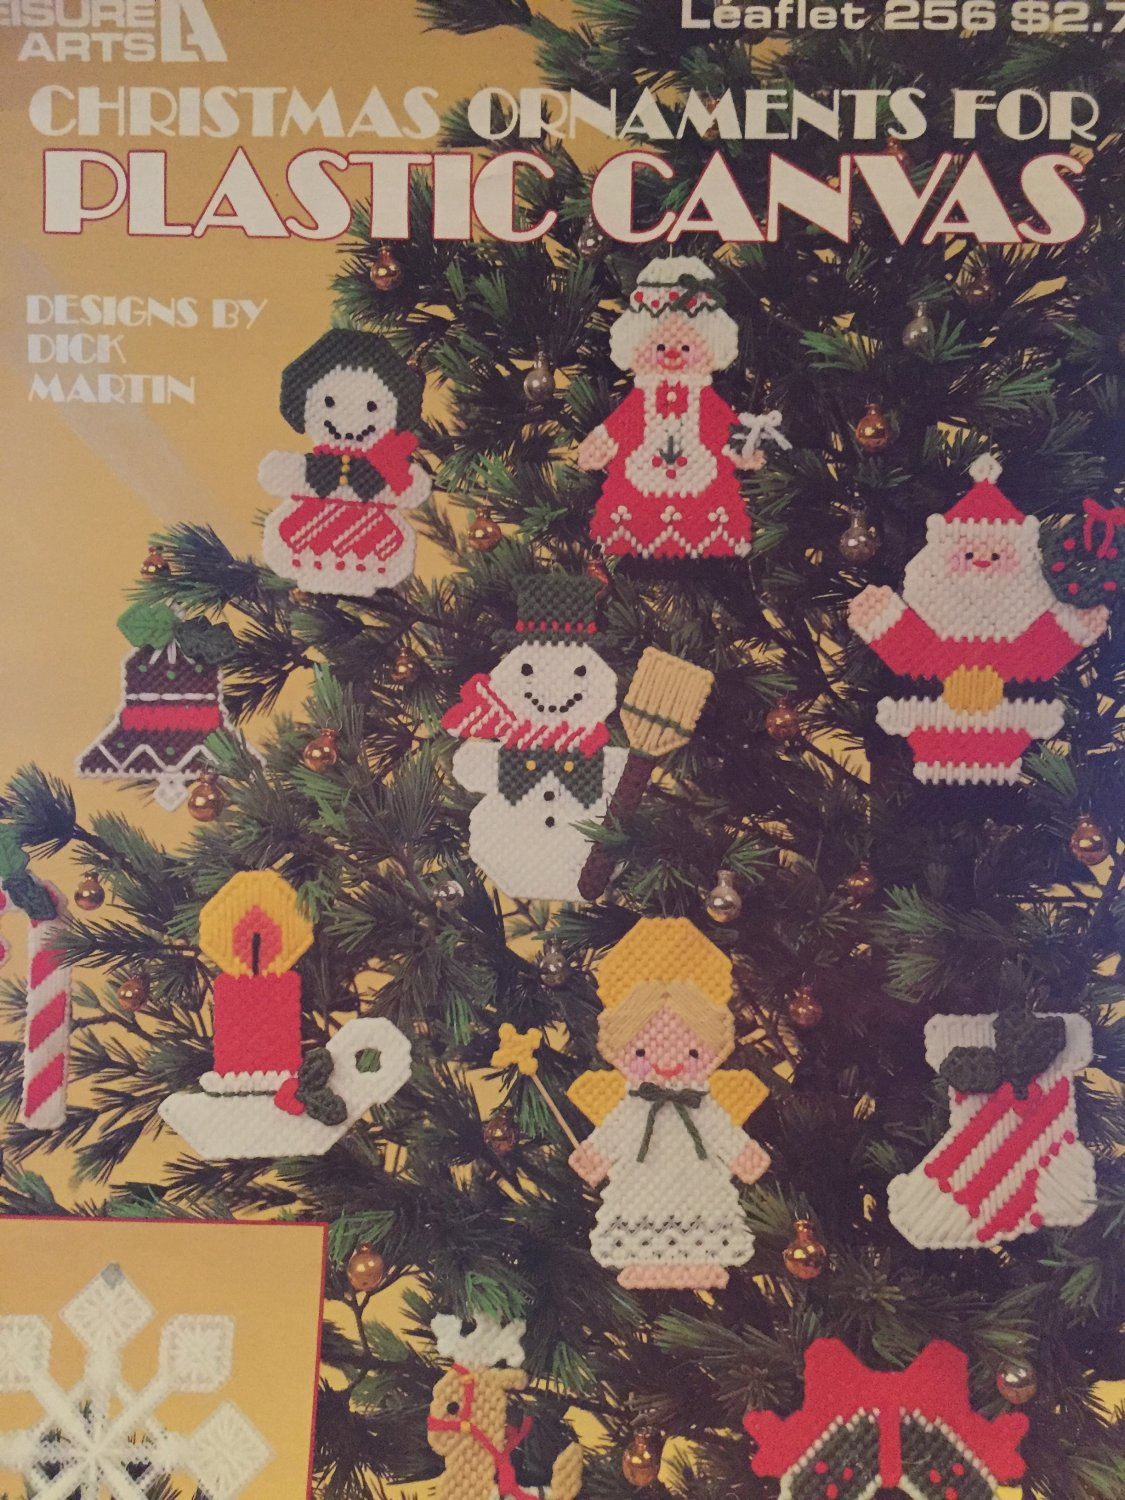 Christmas Tree ornaments in Plastic Canvas by Dick Martin Leisure Arts 256